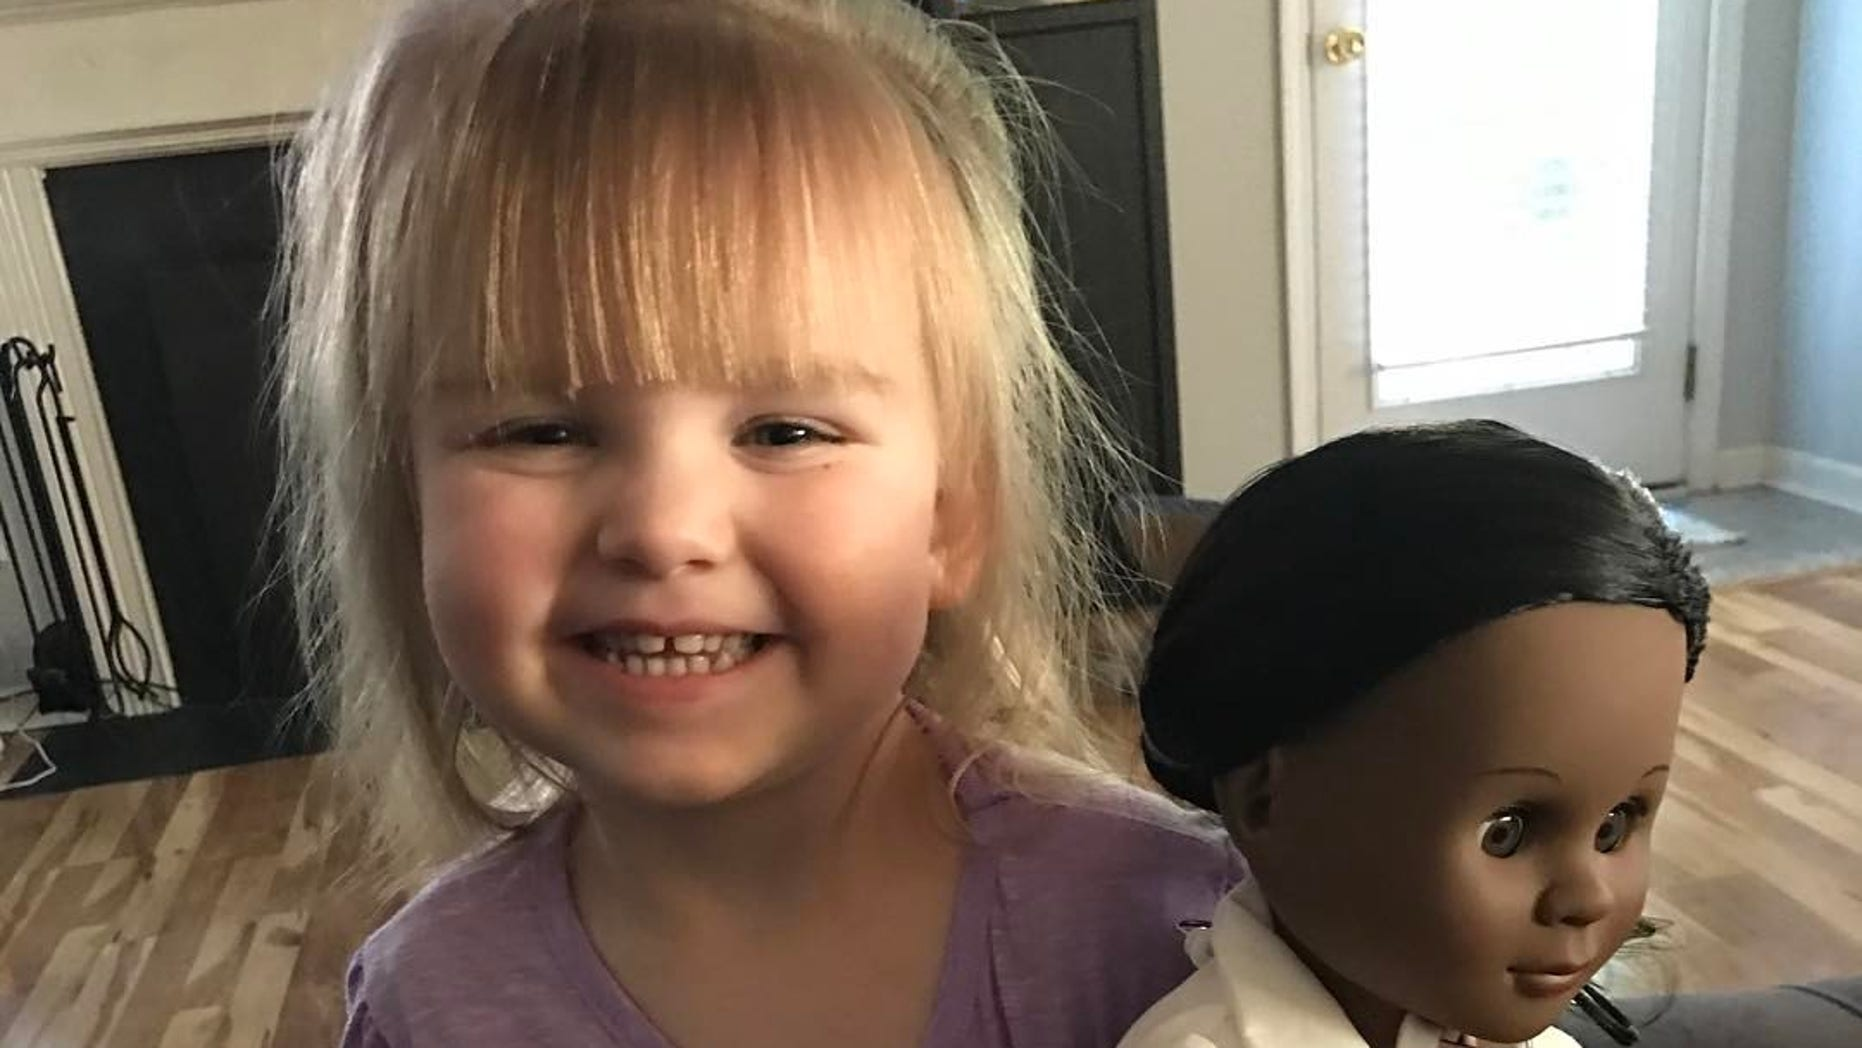 Sophia showing off her doll.